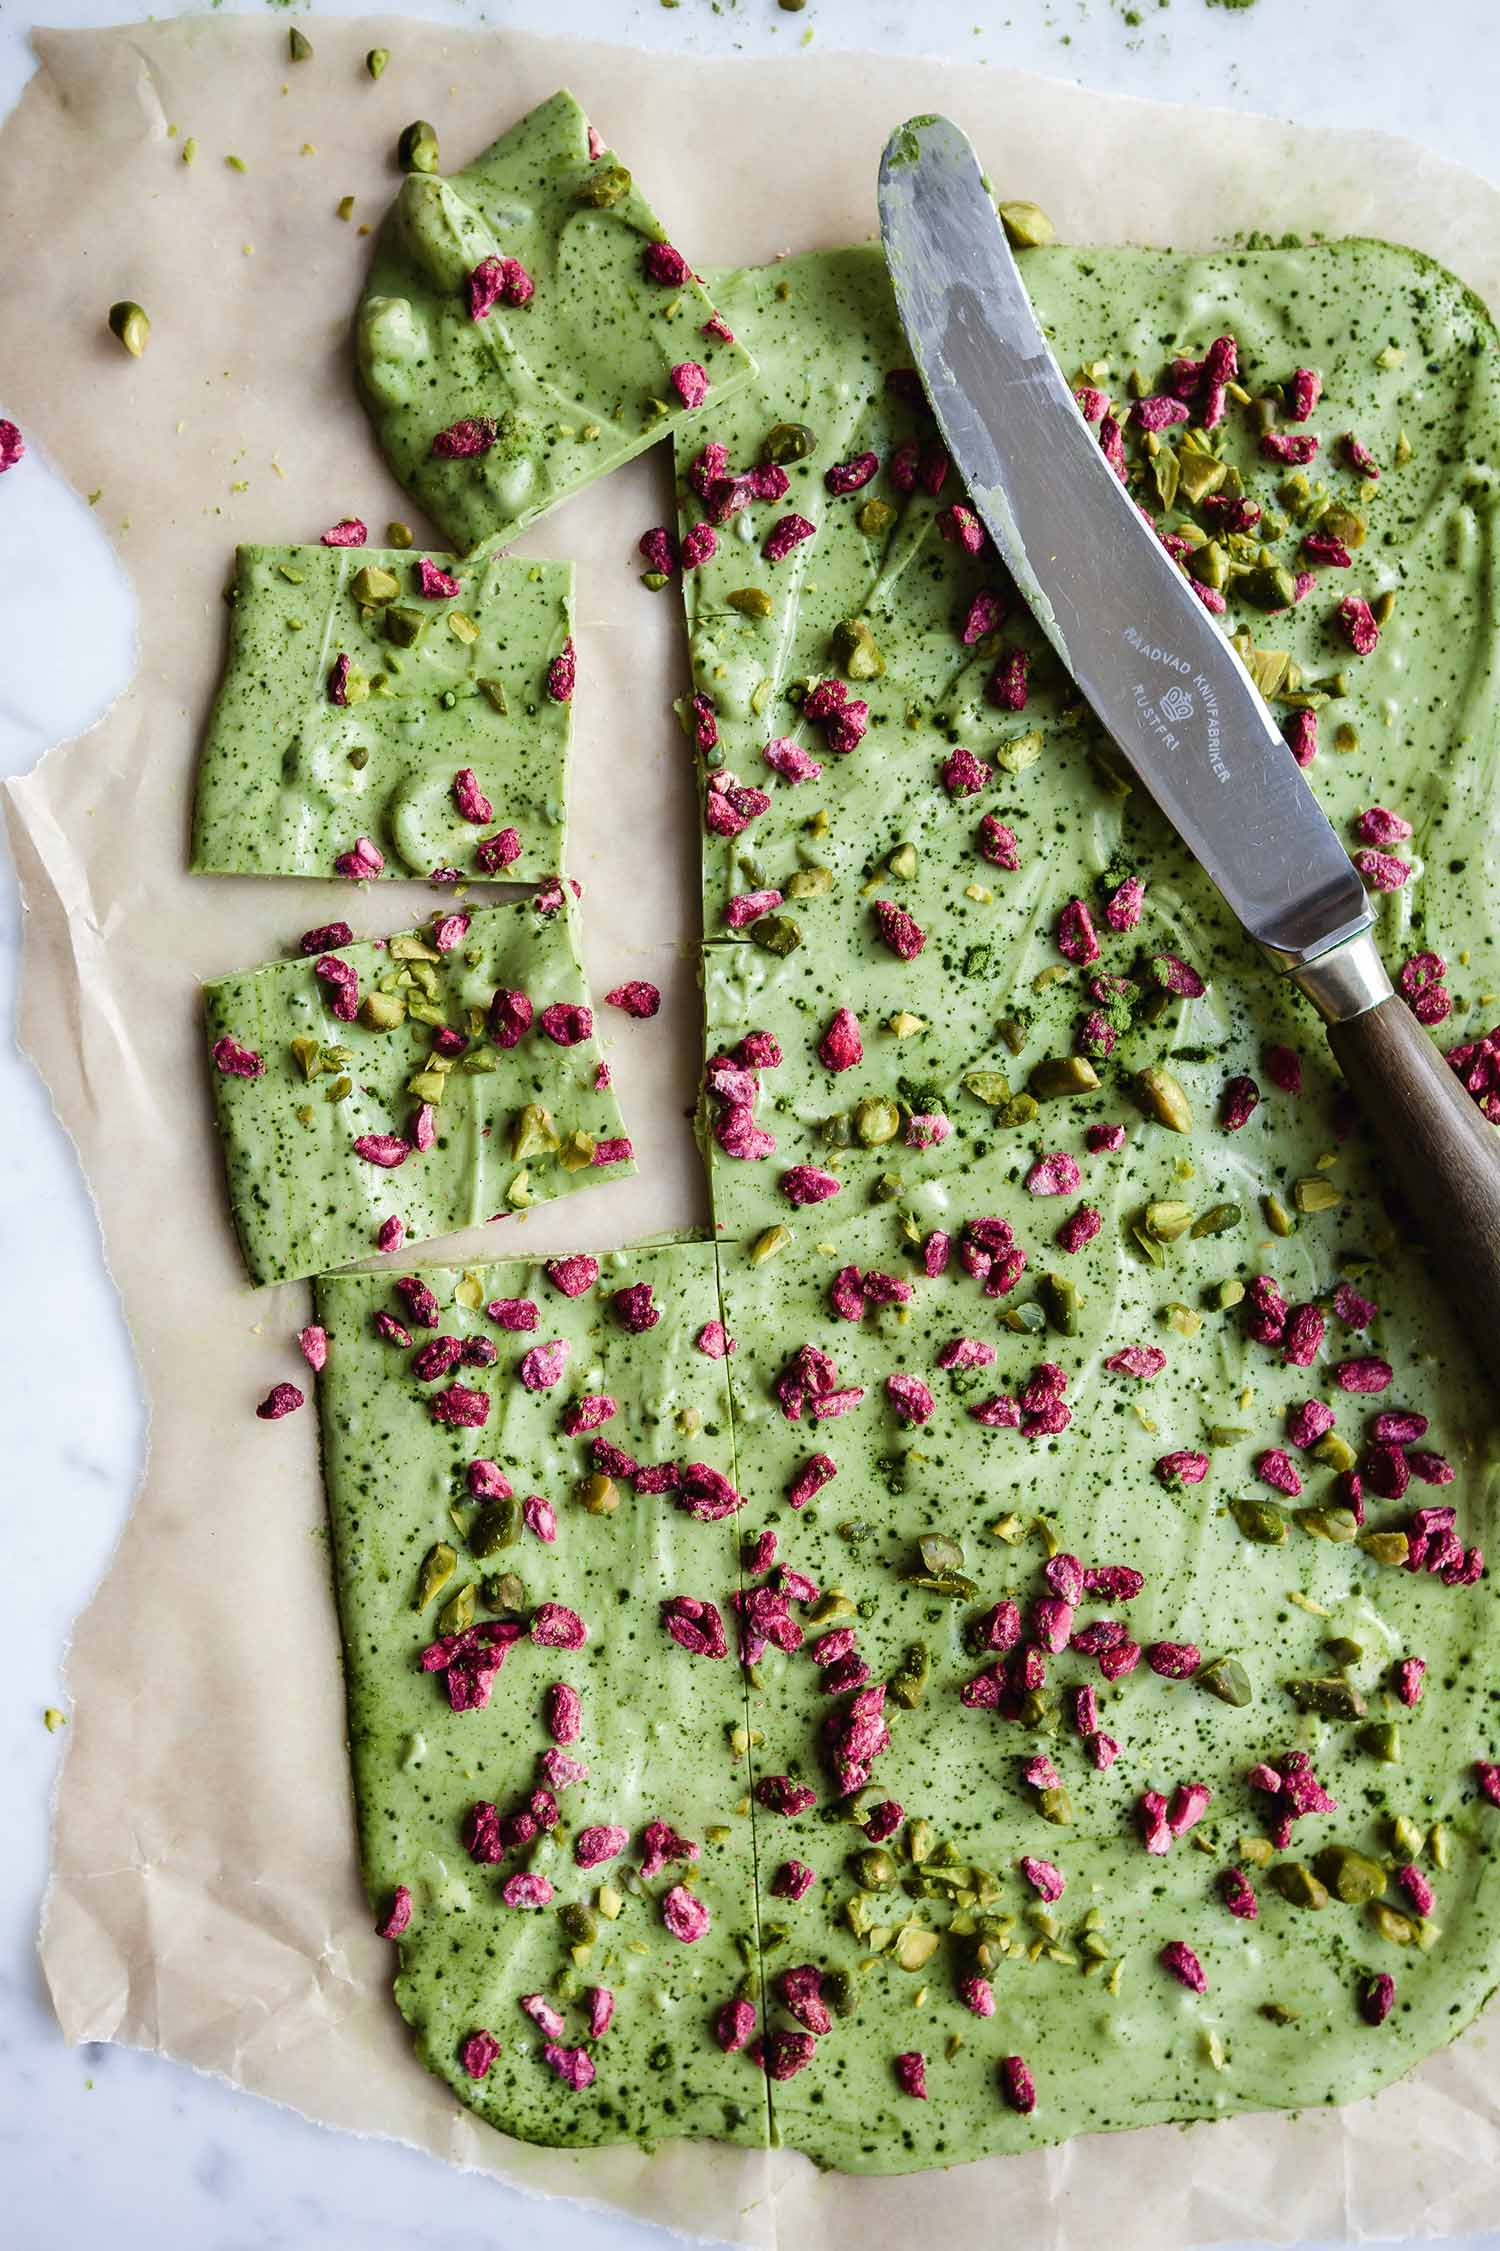 White Chocolate Bark with Matcha Tea, Dried Pomegranate Seeds, and Pistachios